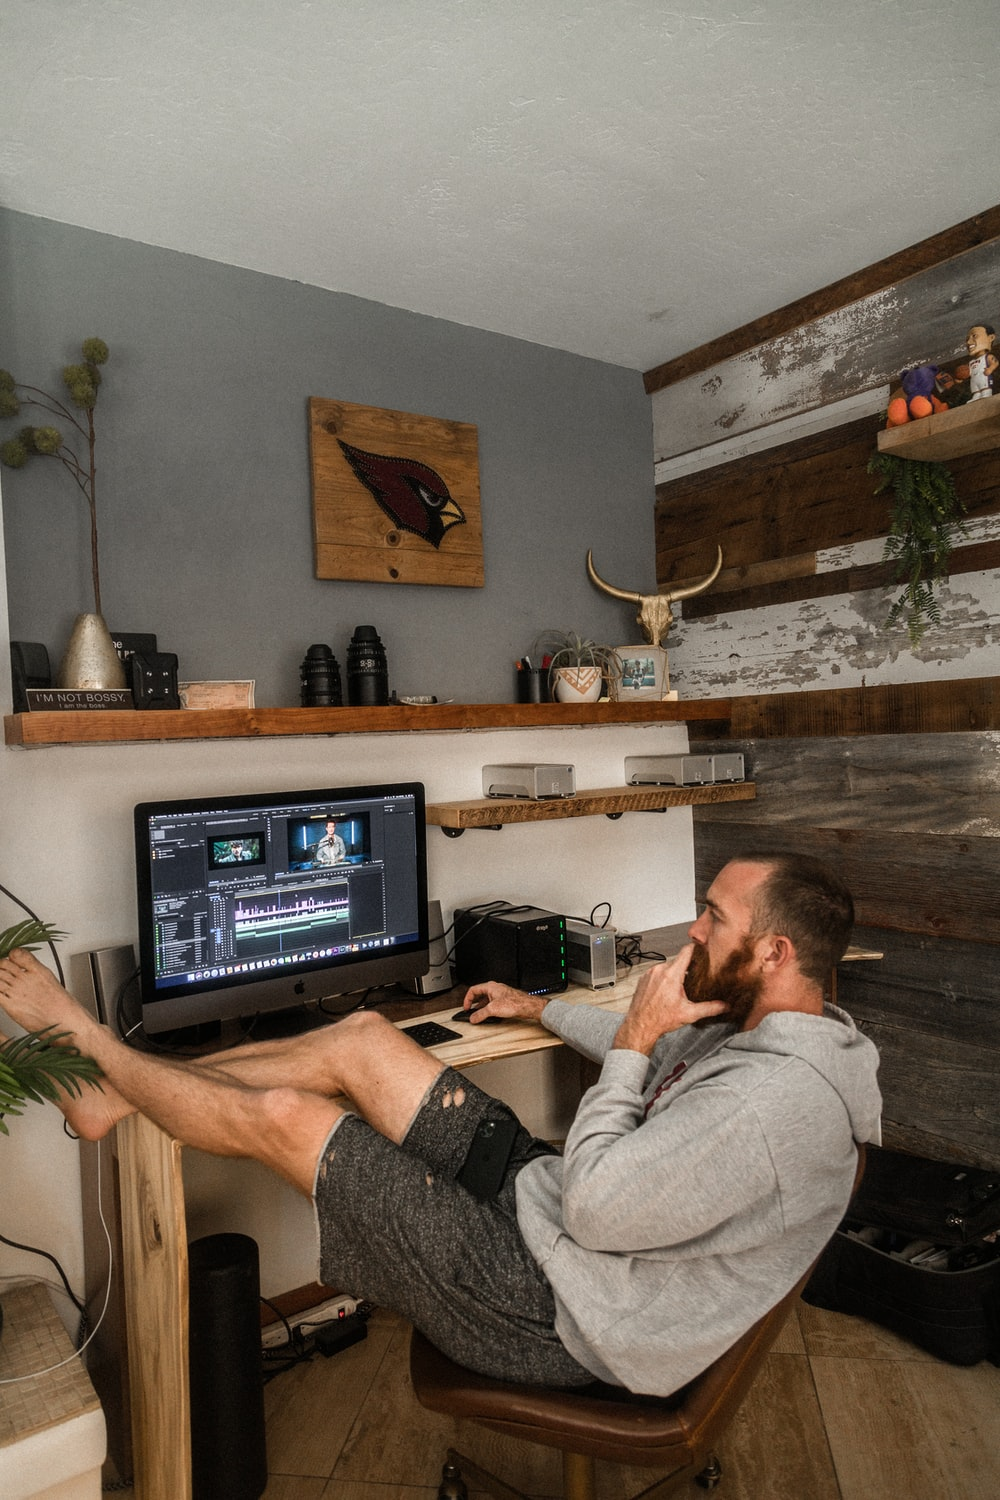 man in gray shirt and black shorts sitting on chair using laptop computer